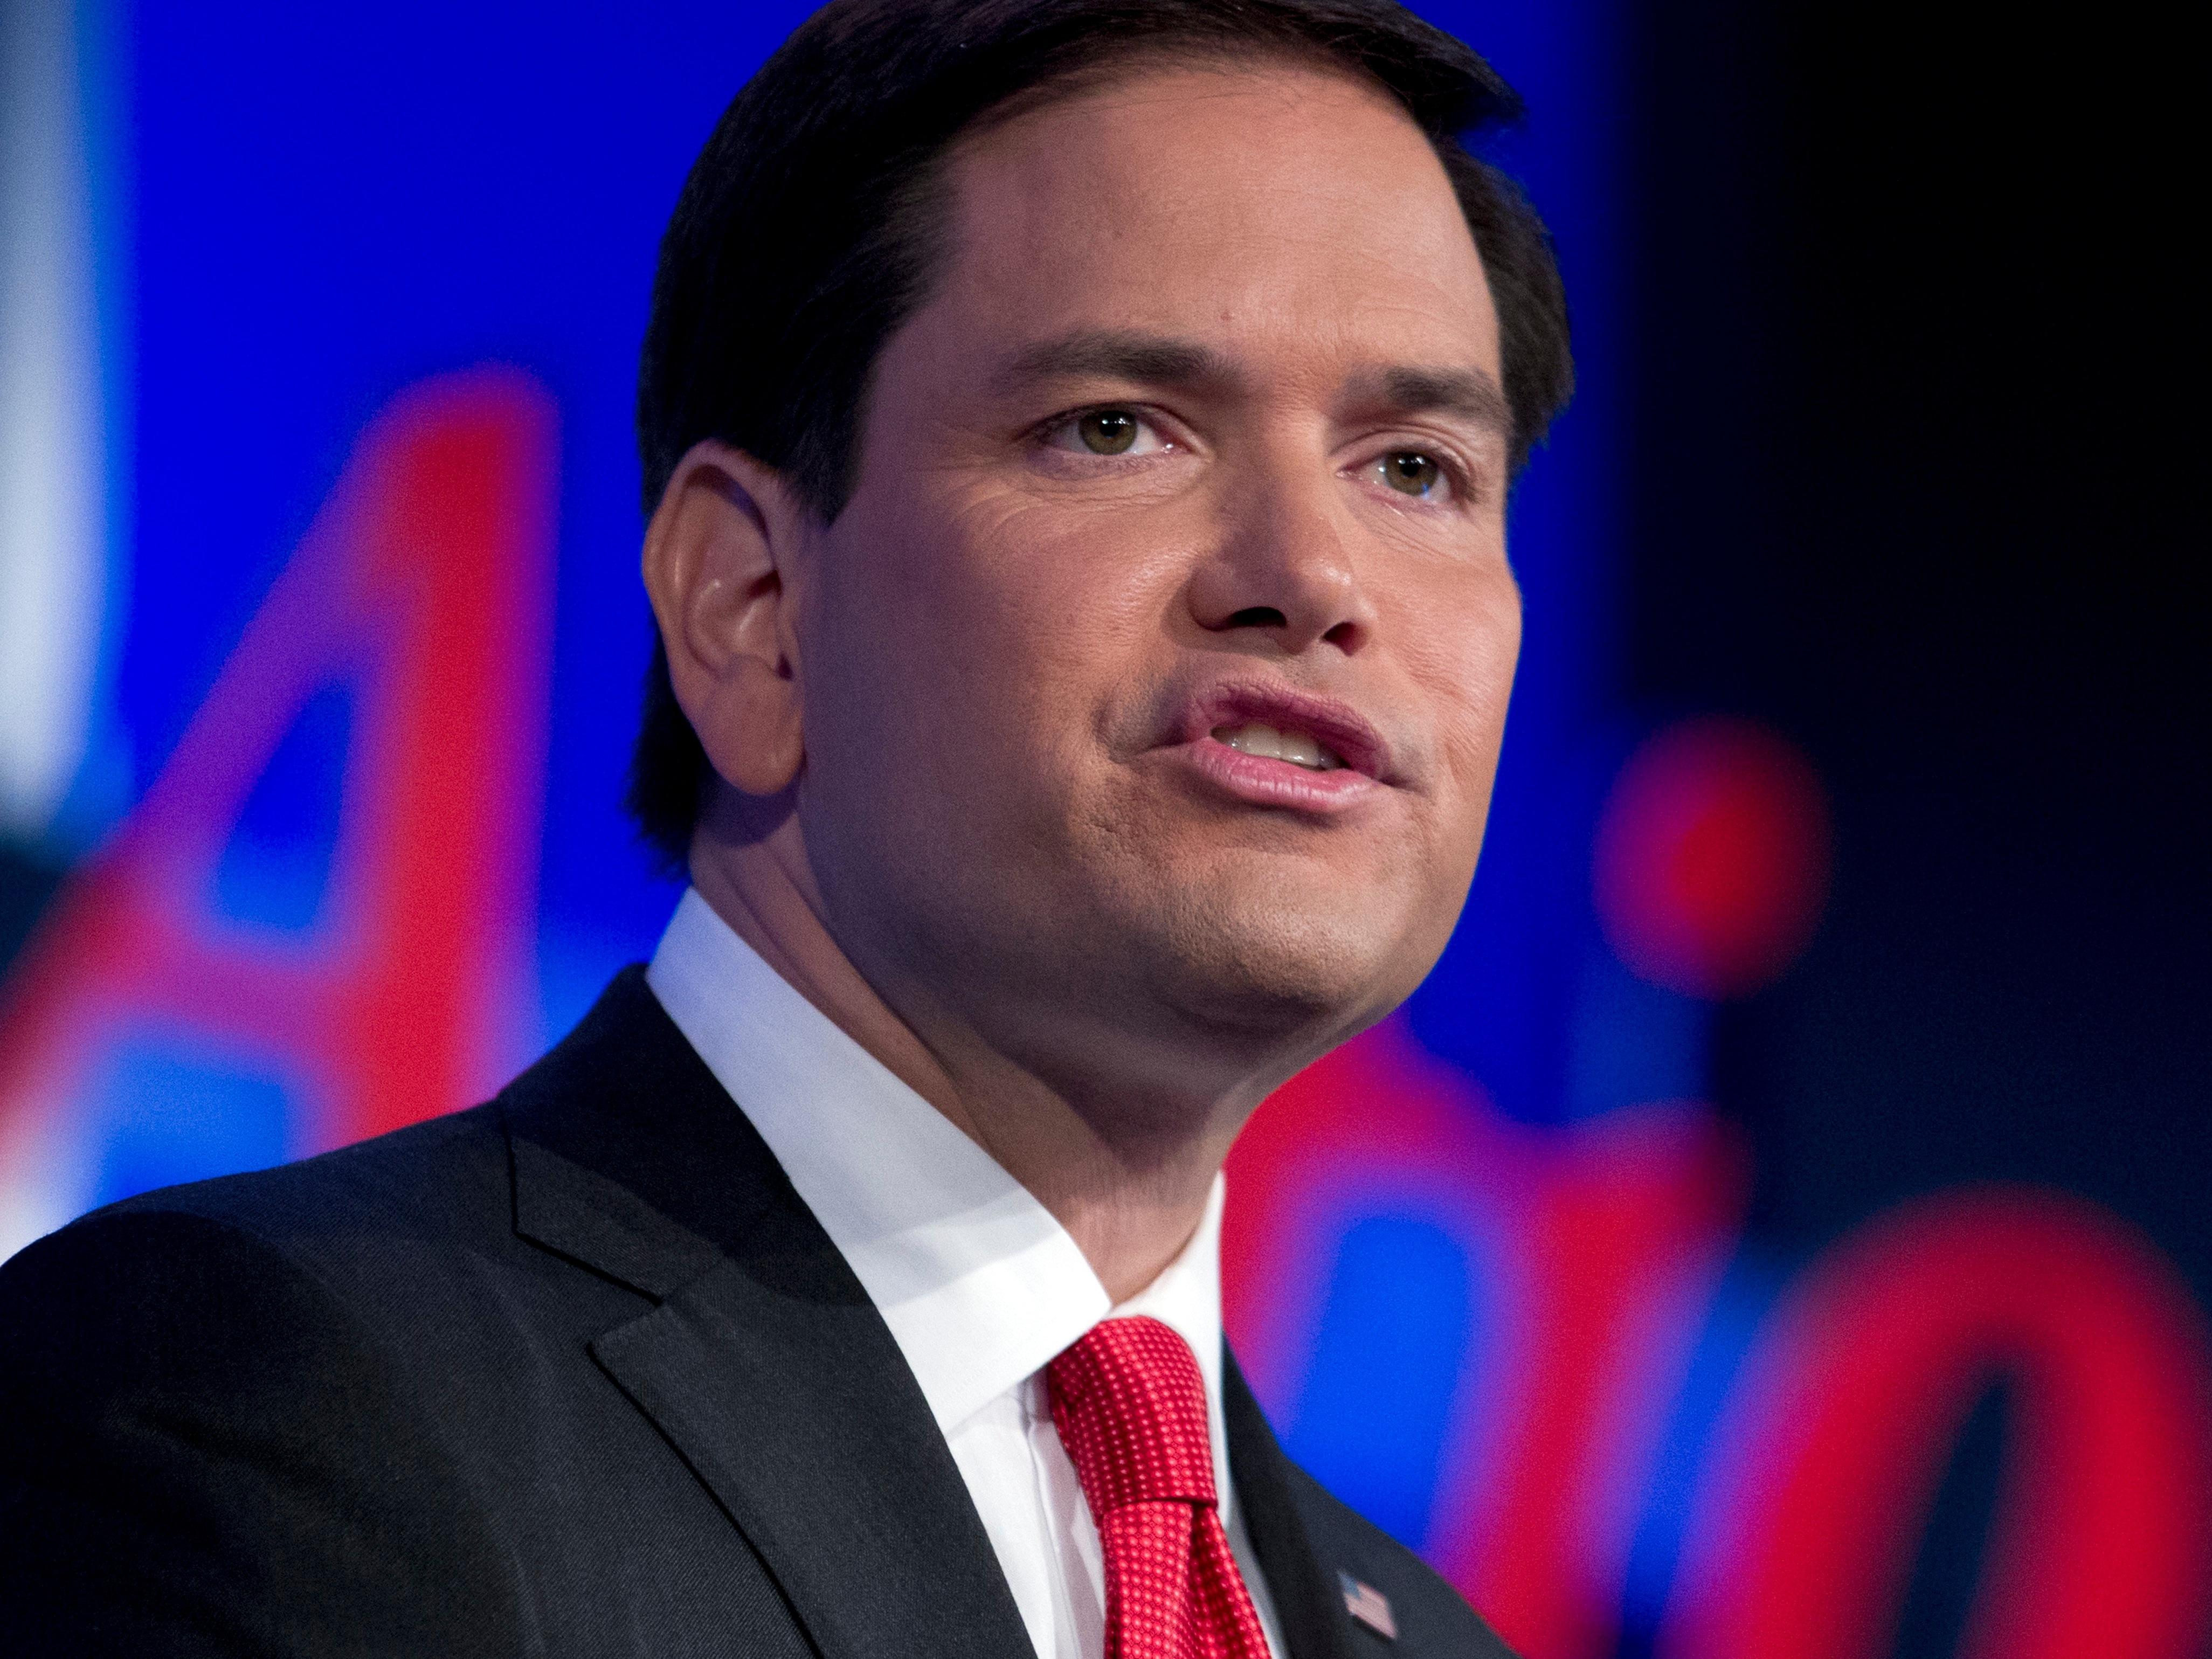 Marco Rubio: Putin is a 'gangster' and a 'thug' — and here's how I'd take him on